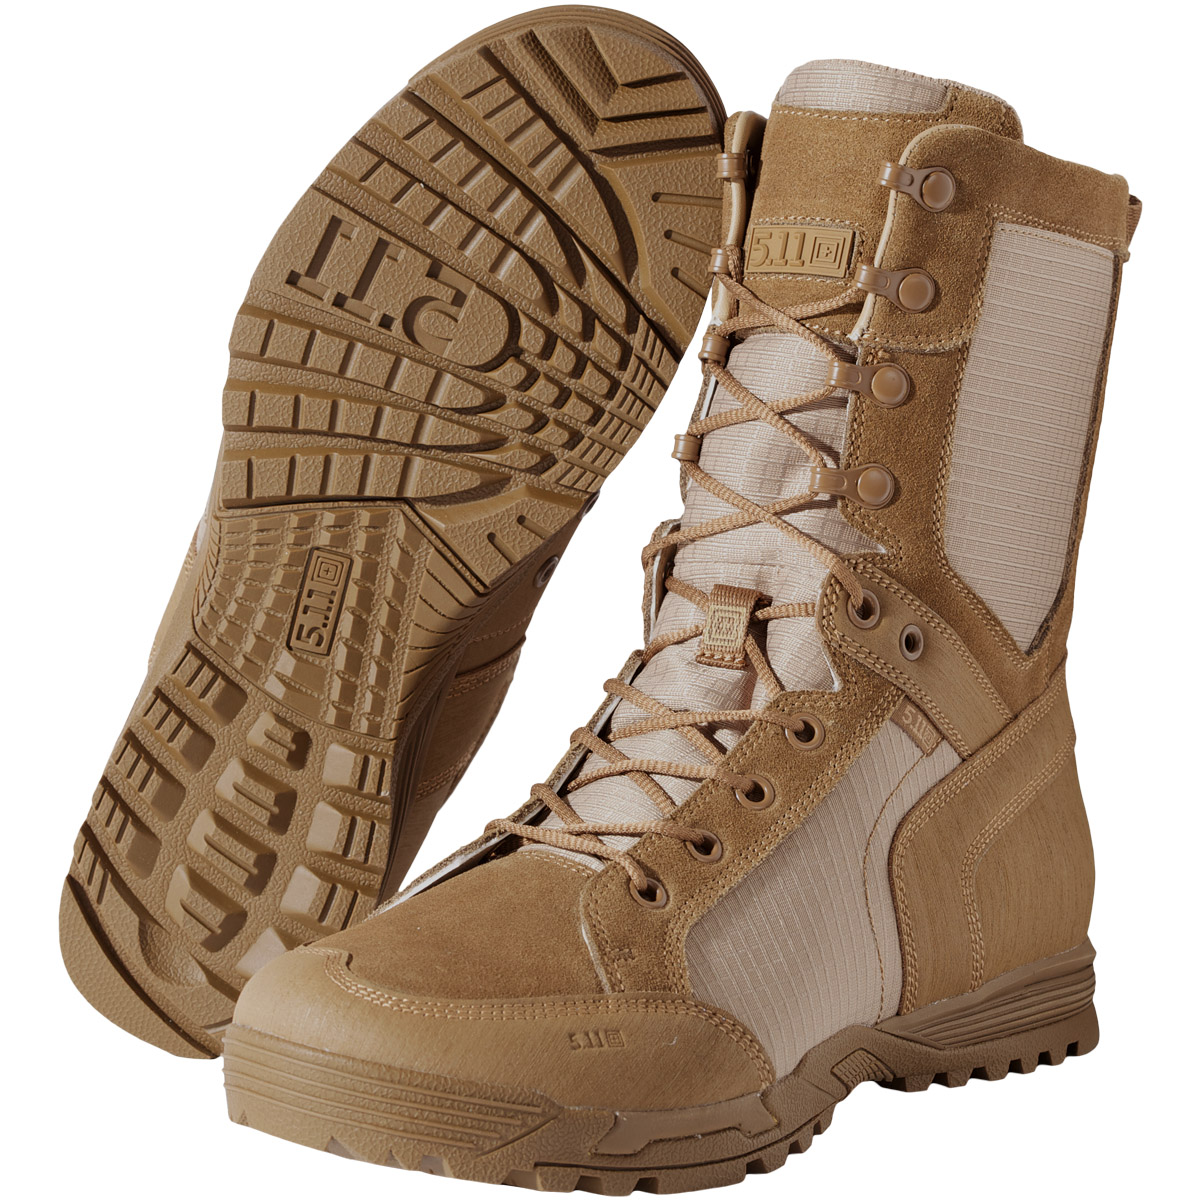 5.11 RECON DESERT MENS BOOTS MILITARY PATROL AIRSOFT HIKING FOOTWEAR DARK COYOTE